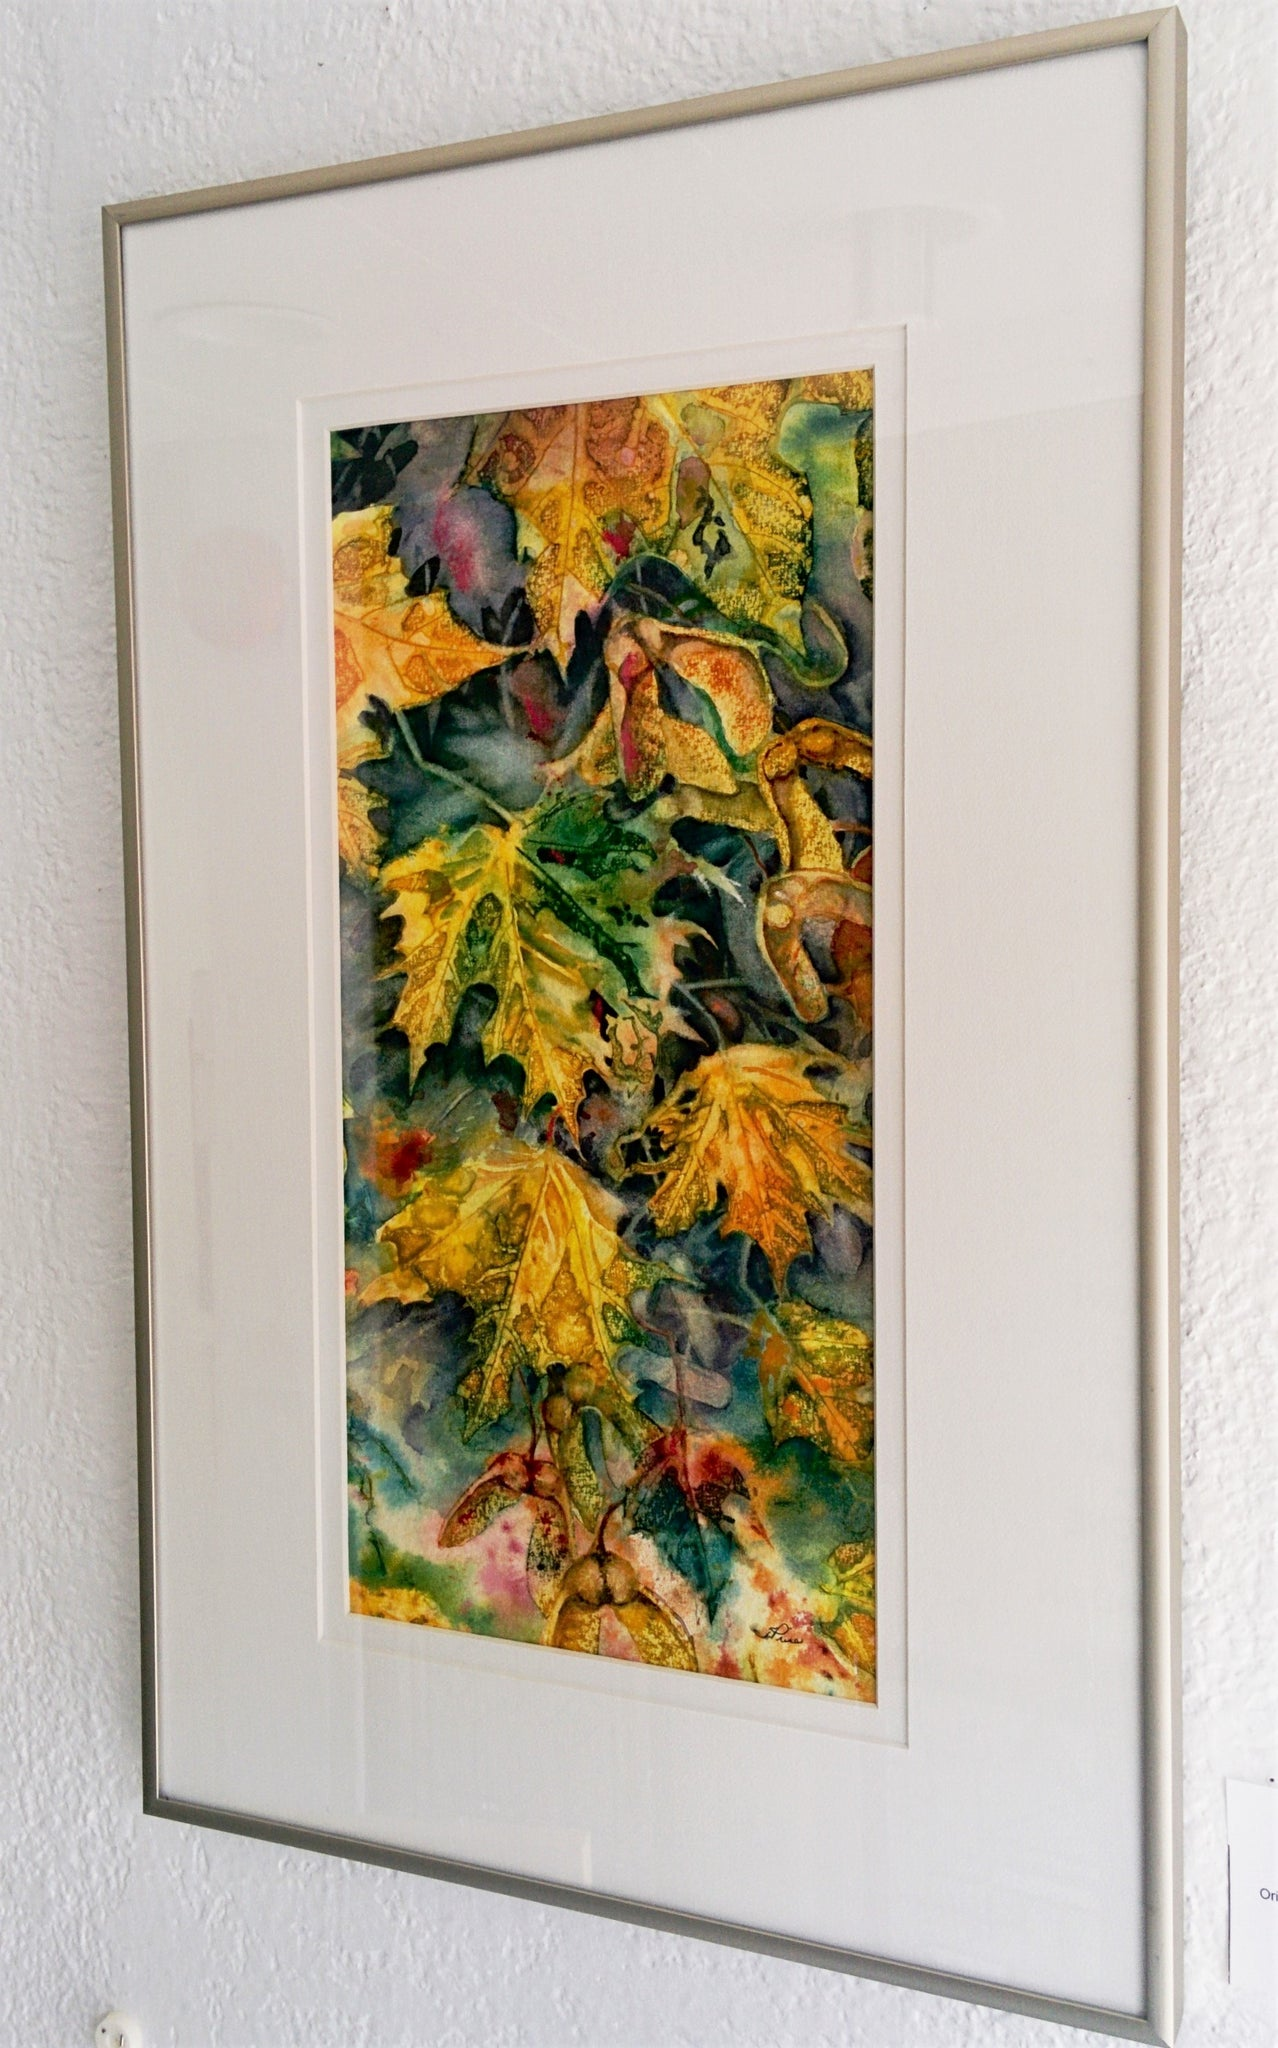 Framed Original Painting - MAPLE KEYS